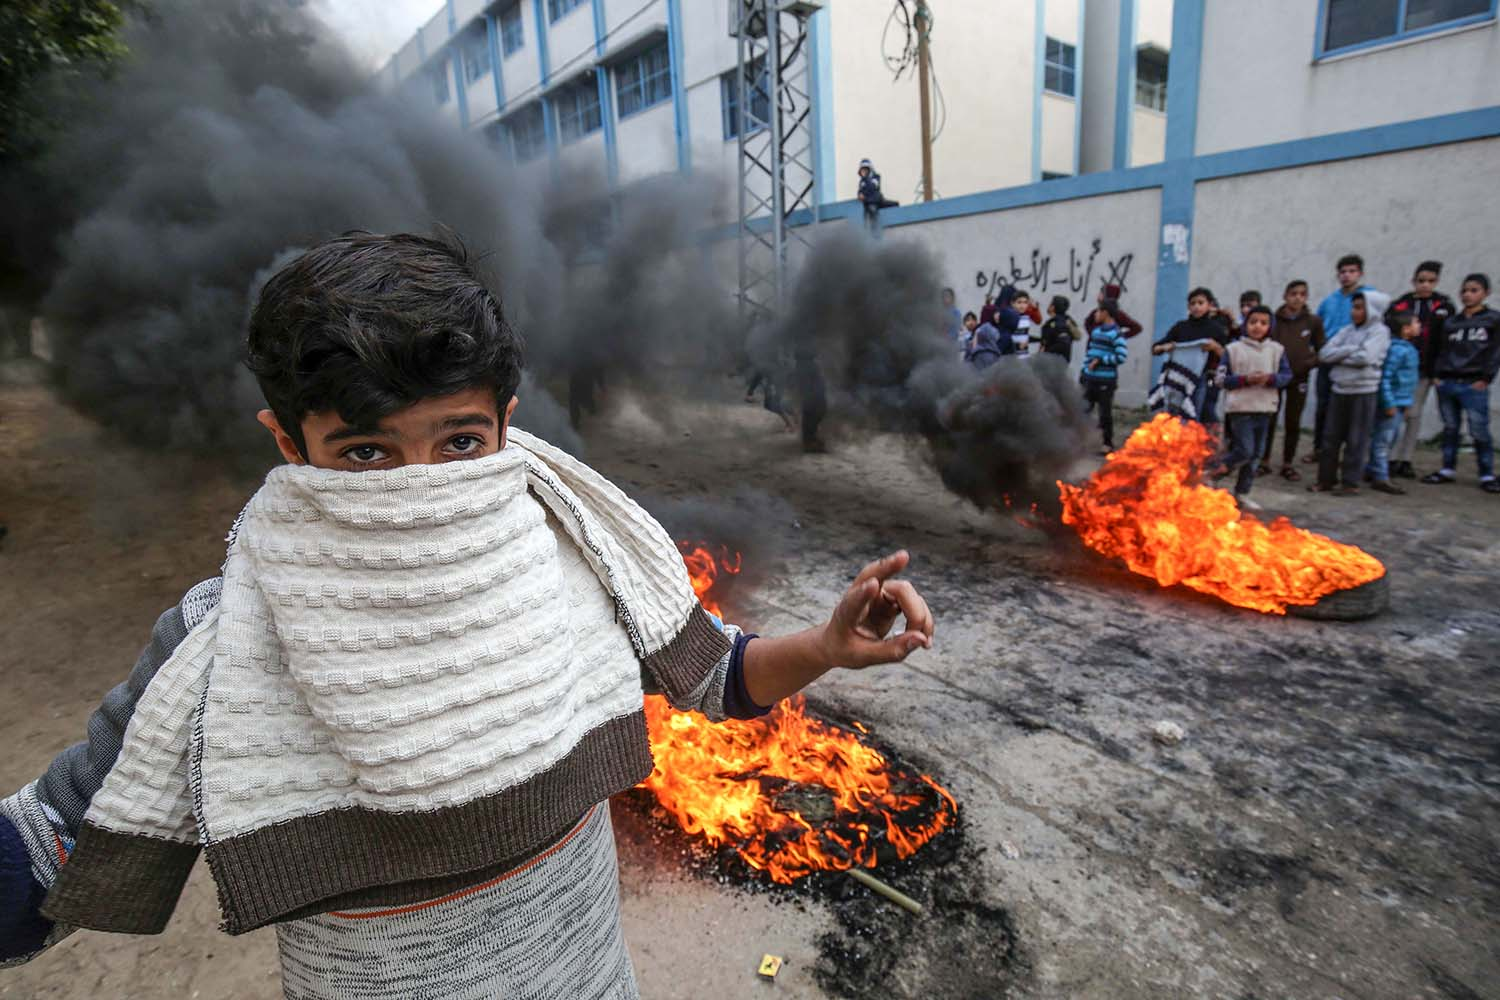 A young Palestinian protester stands in front of burning tires during demonstrations against a U.S.-brokered Mideast peace plan in Khan Yunis in the southern Gaza Strip, on Jan. 29. SAID KHATIB/AFP via Getty Images